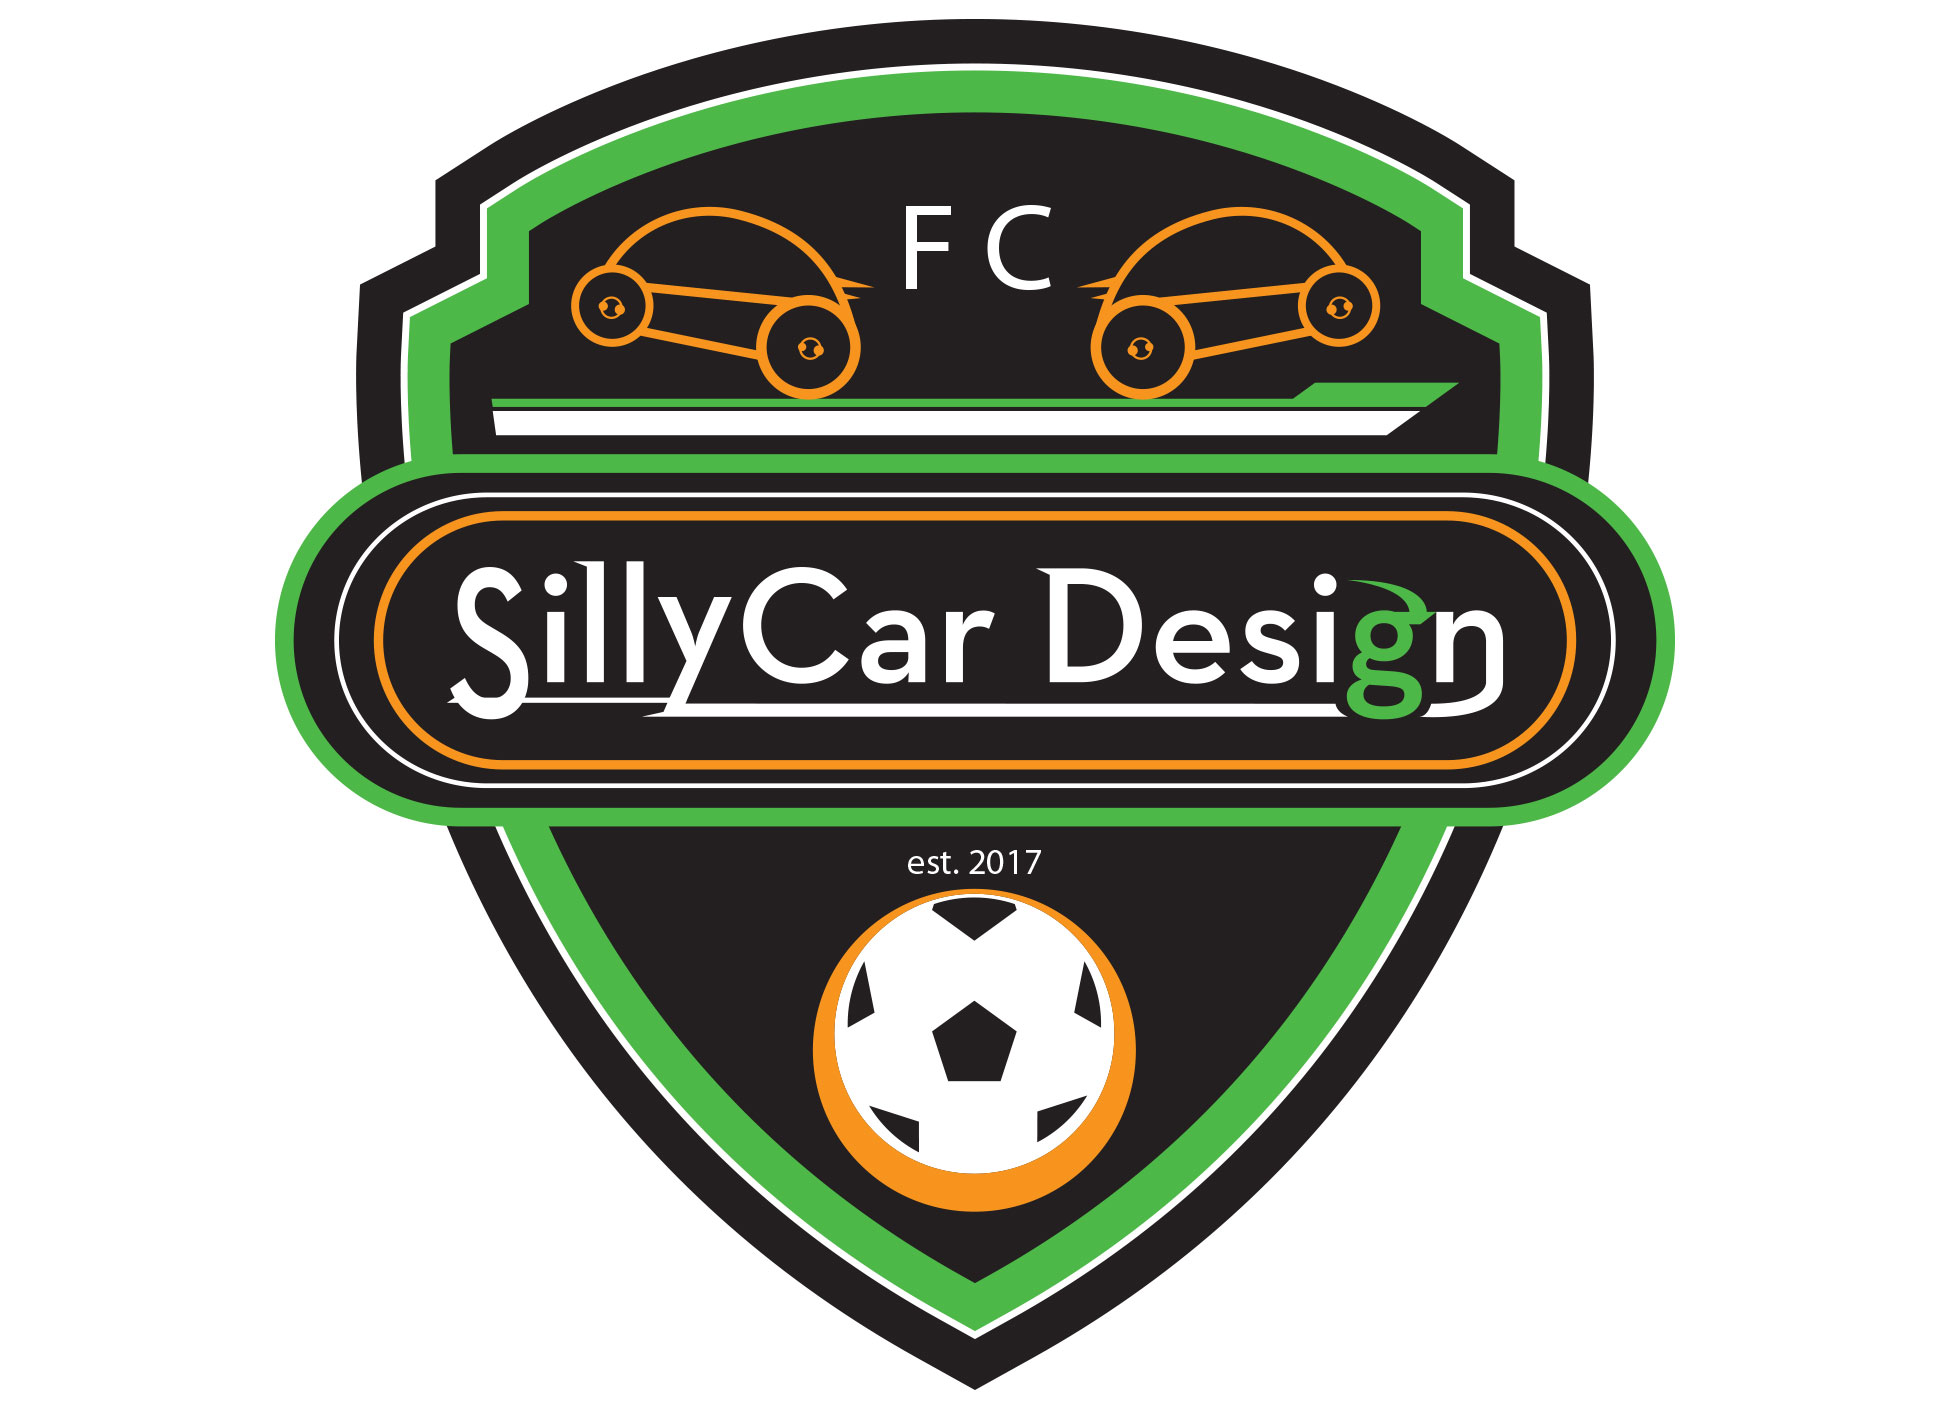 Image of SillyCar Design FC logo created for BARC soccer team.